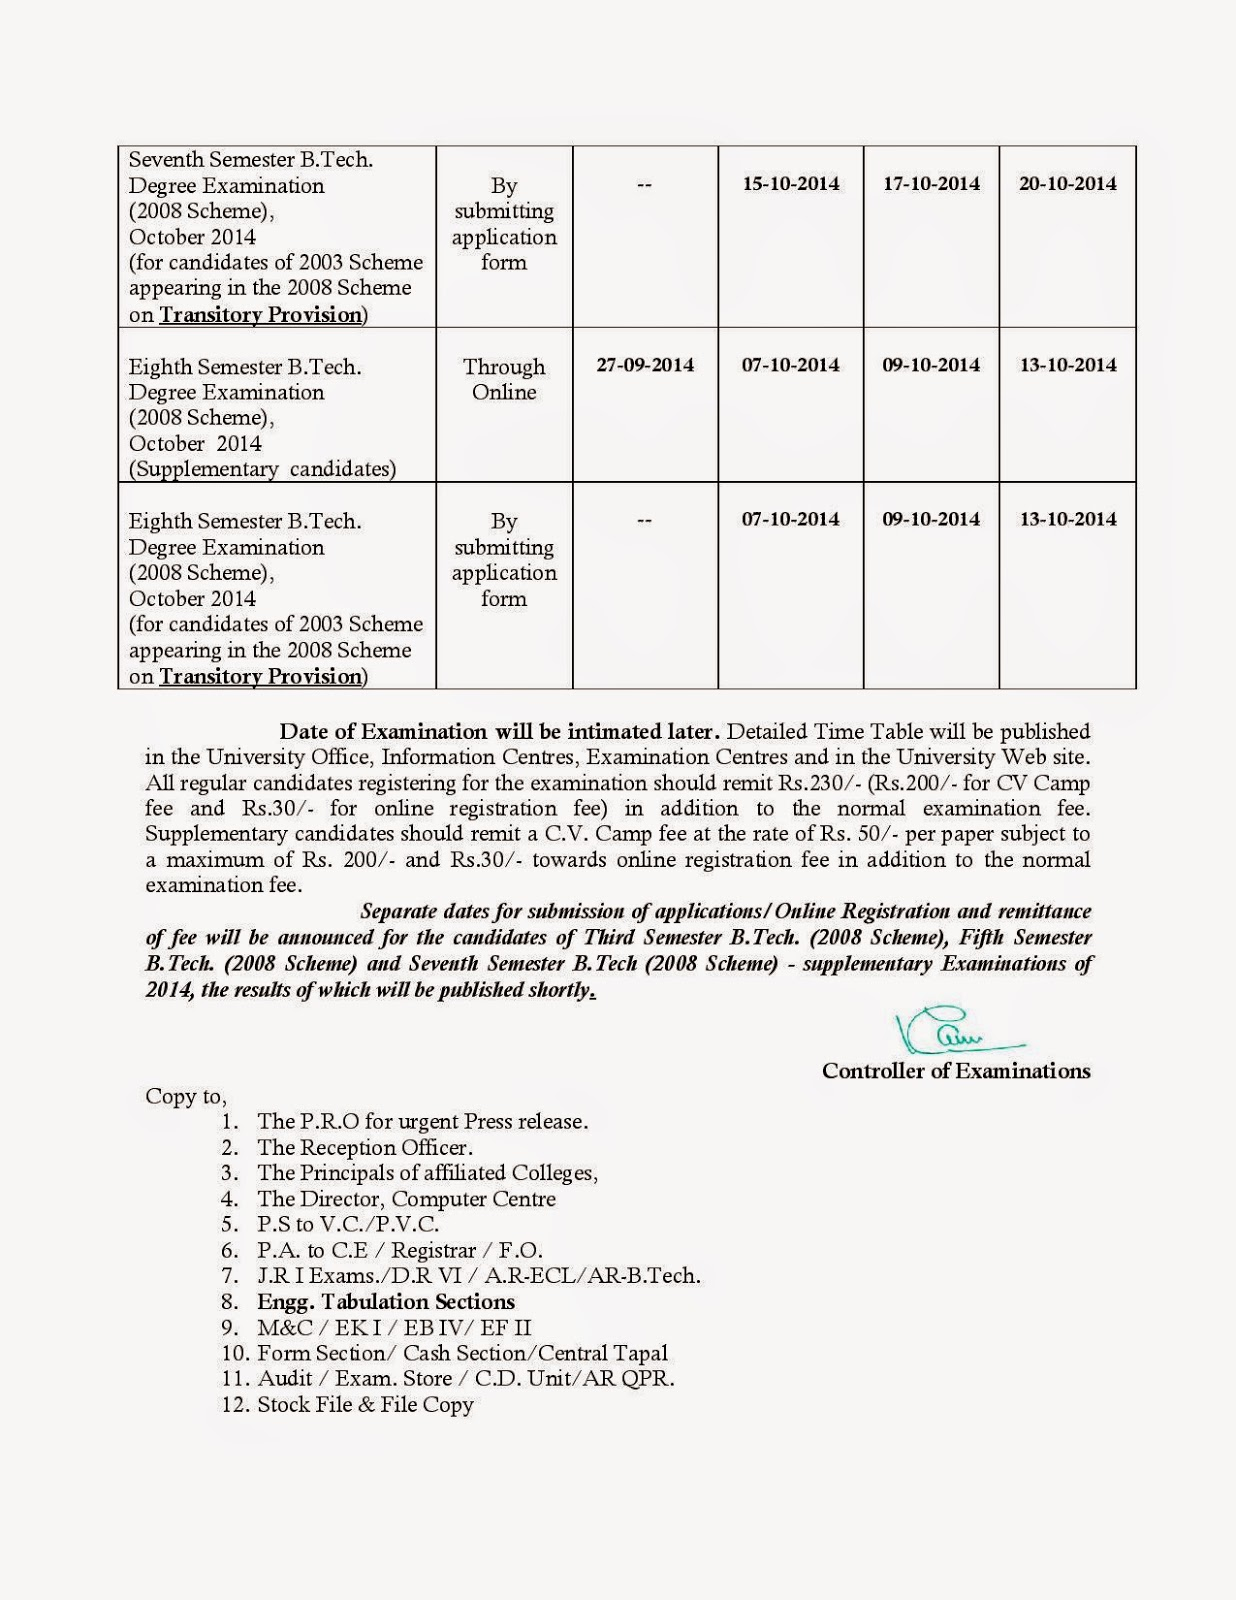 Kerala University B.Tech Notification  Combined First & Second -Third - Seventh - Eighth - B.Tech. Degree Examinations, October-November 2014